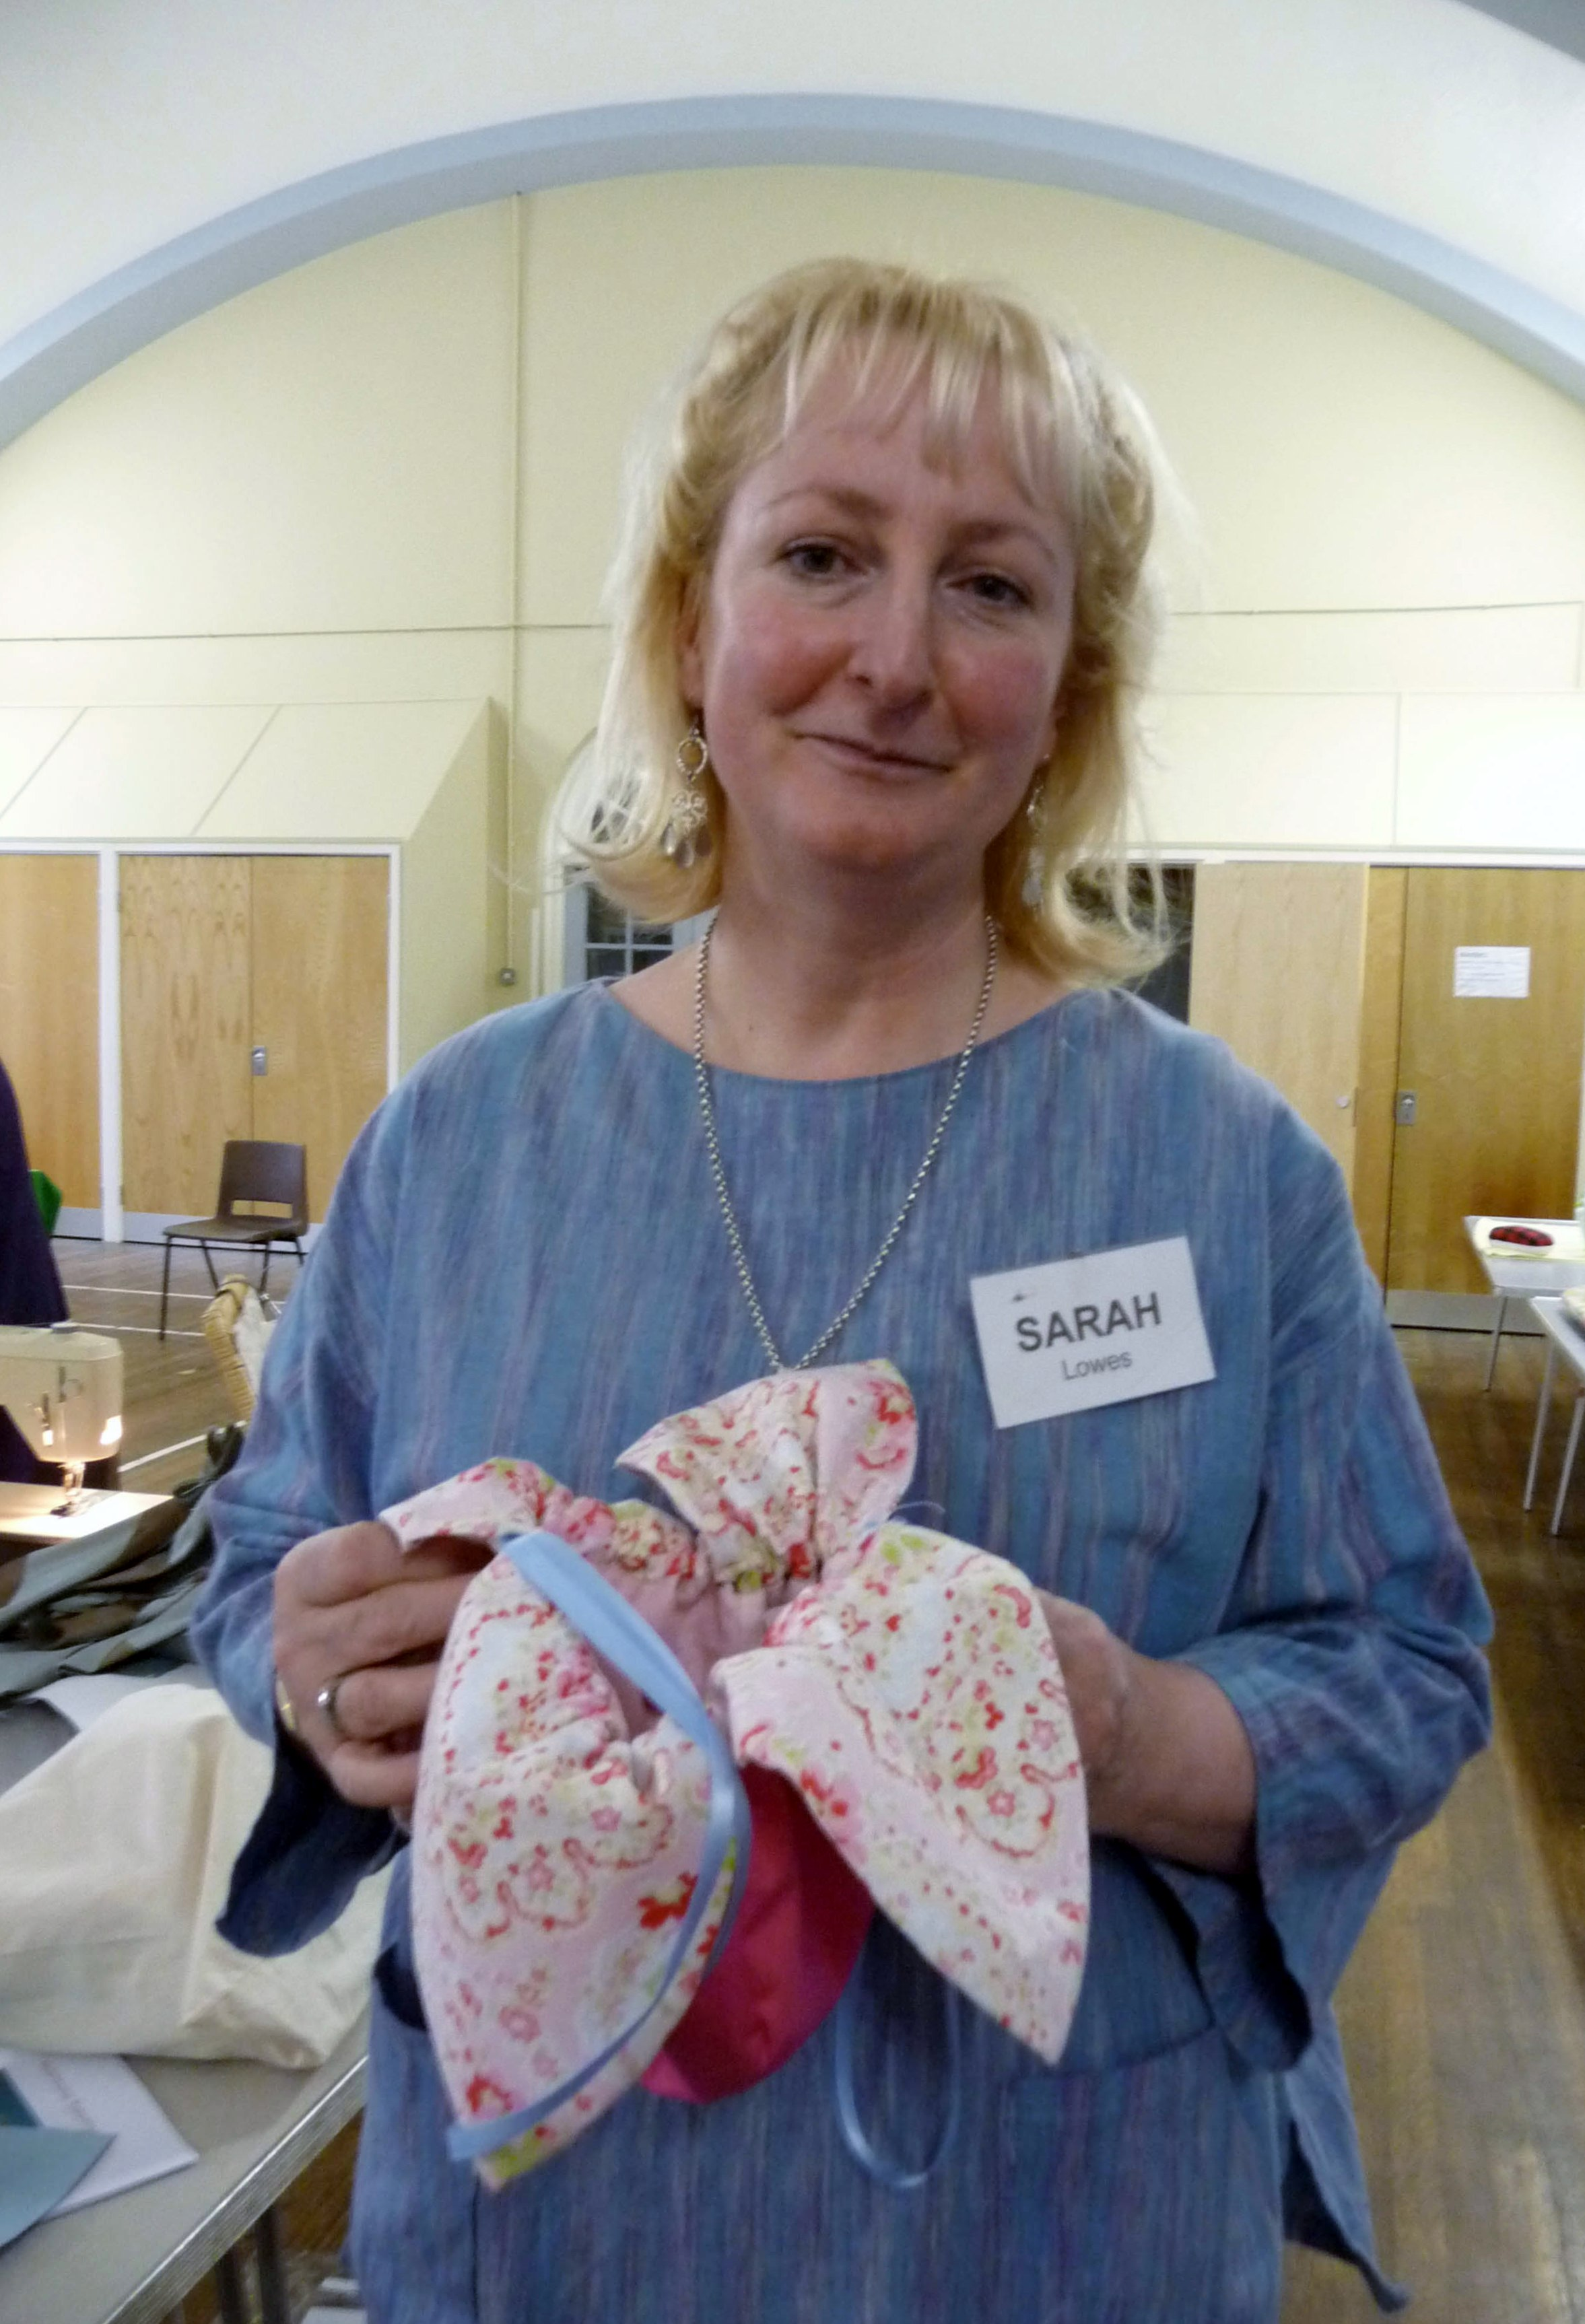 Sarah with her completed bag at Ravishing Reticules workshop